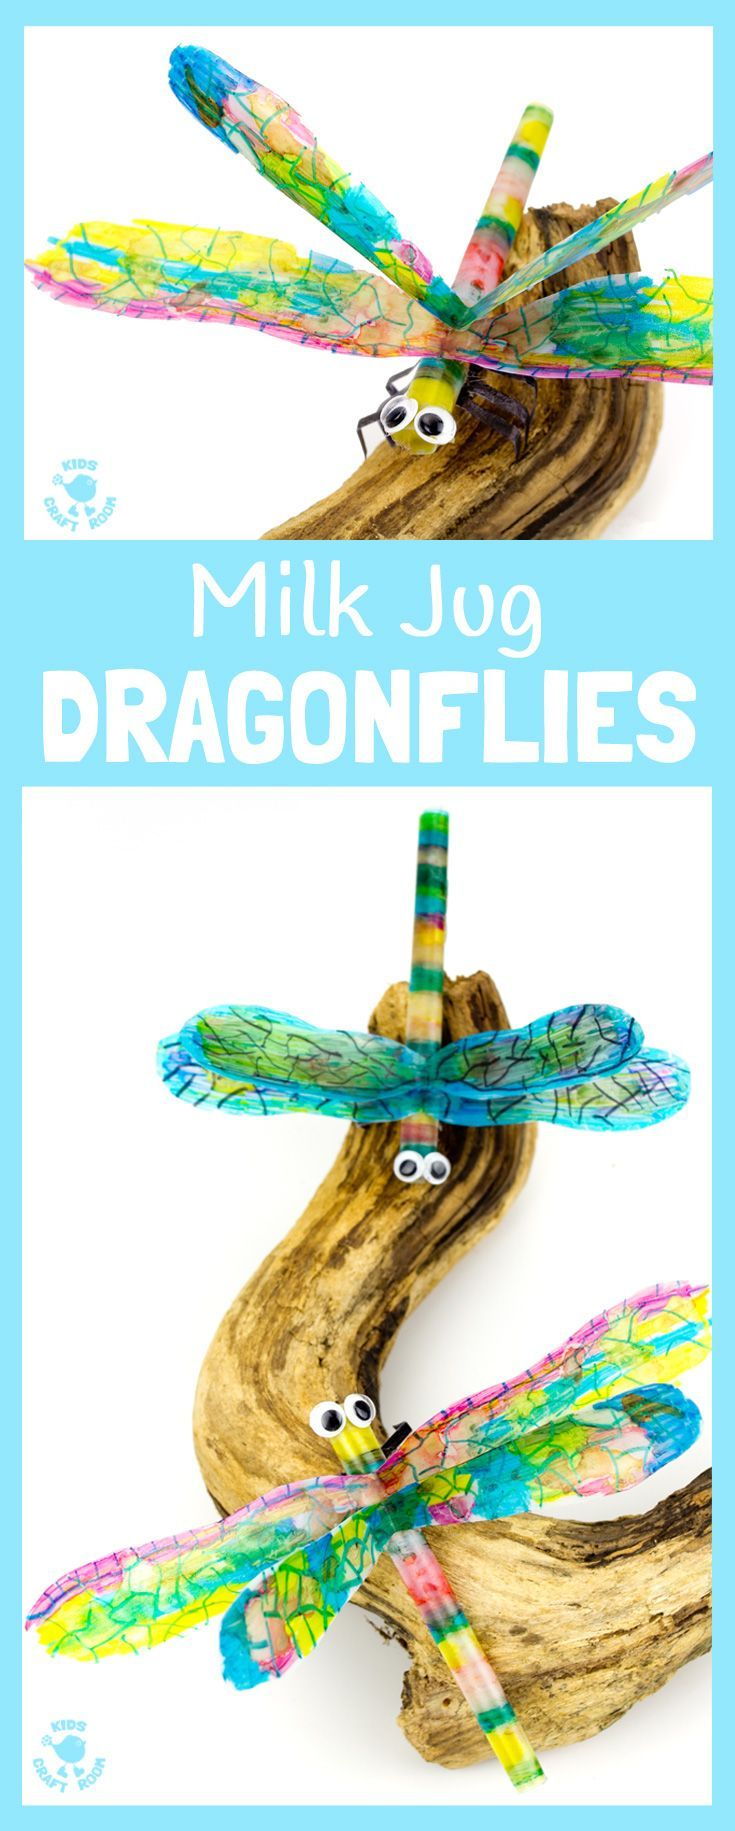 RECYCLED MILK JUG DRAGONFLY CRAFT uses sharpie and alcohol colouring to give a stunning tie dye effect. A pretty insect craft for Spring, Summer & Earth Day.